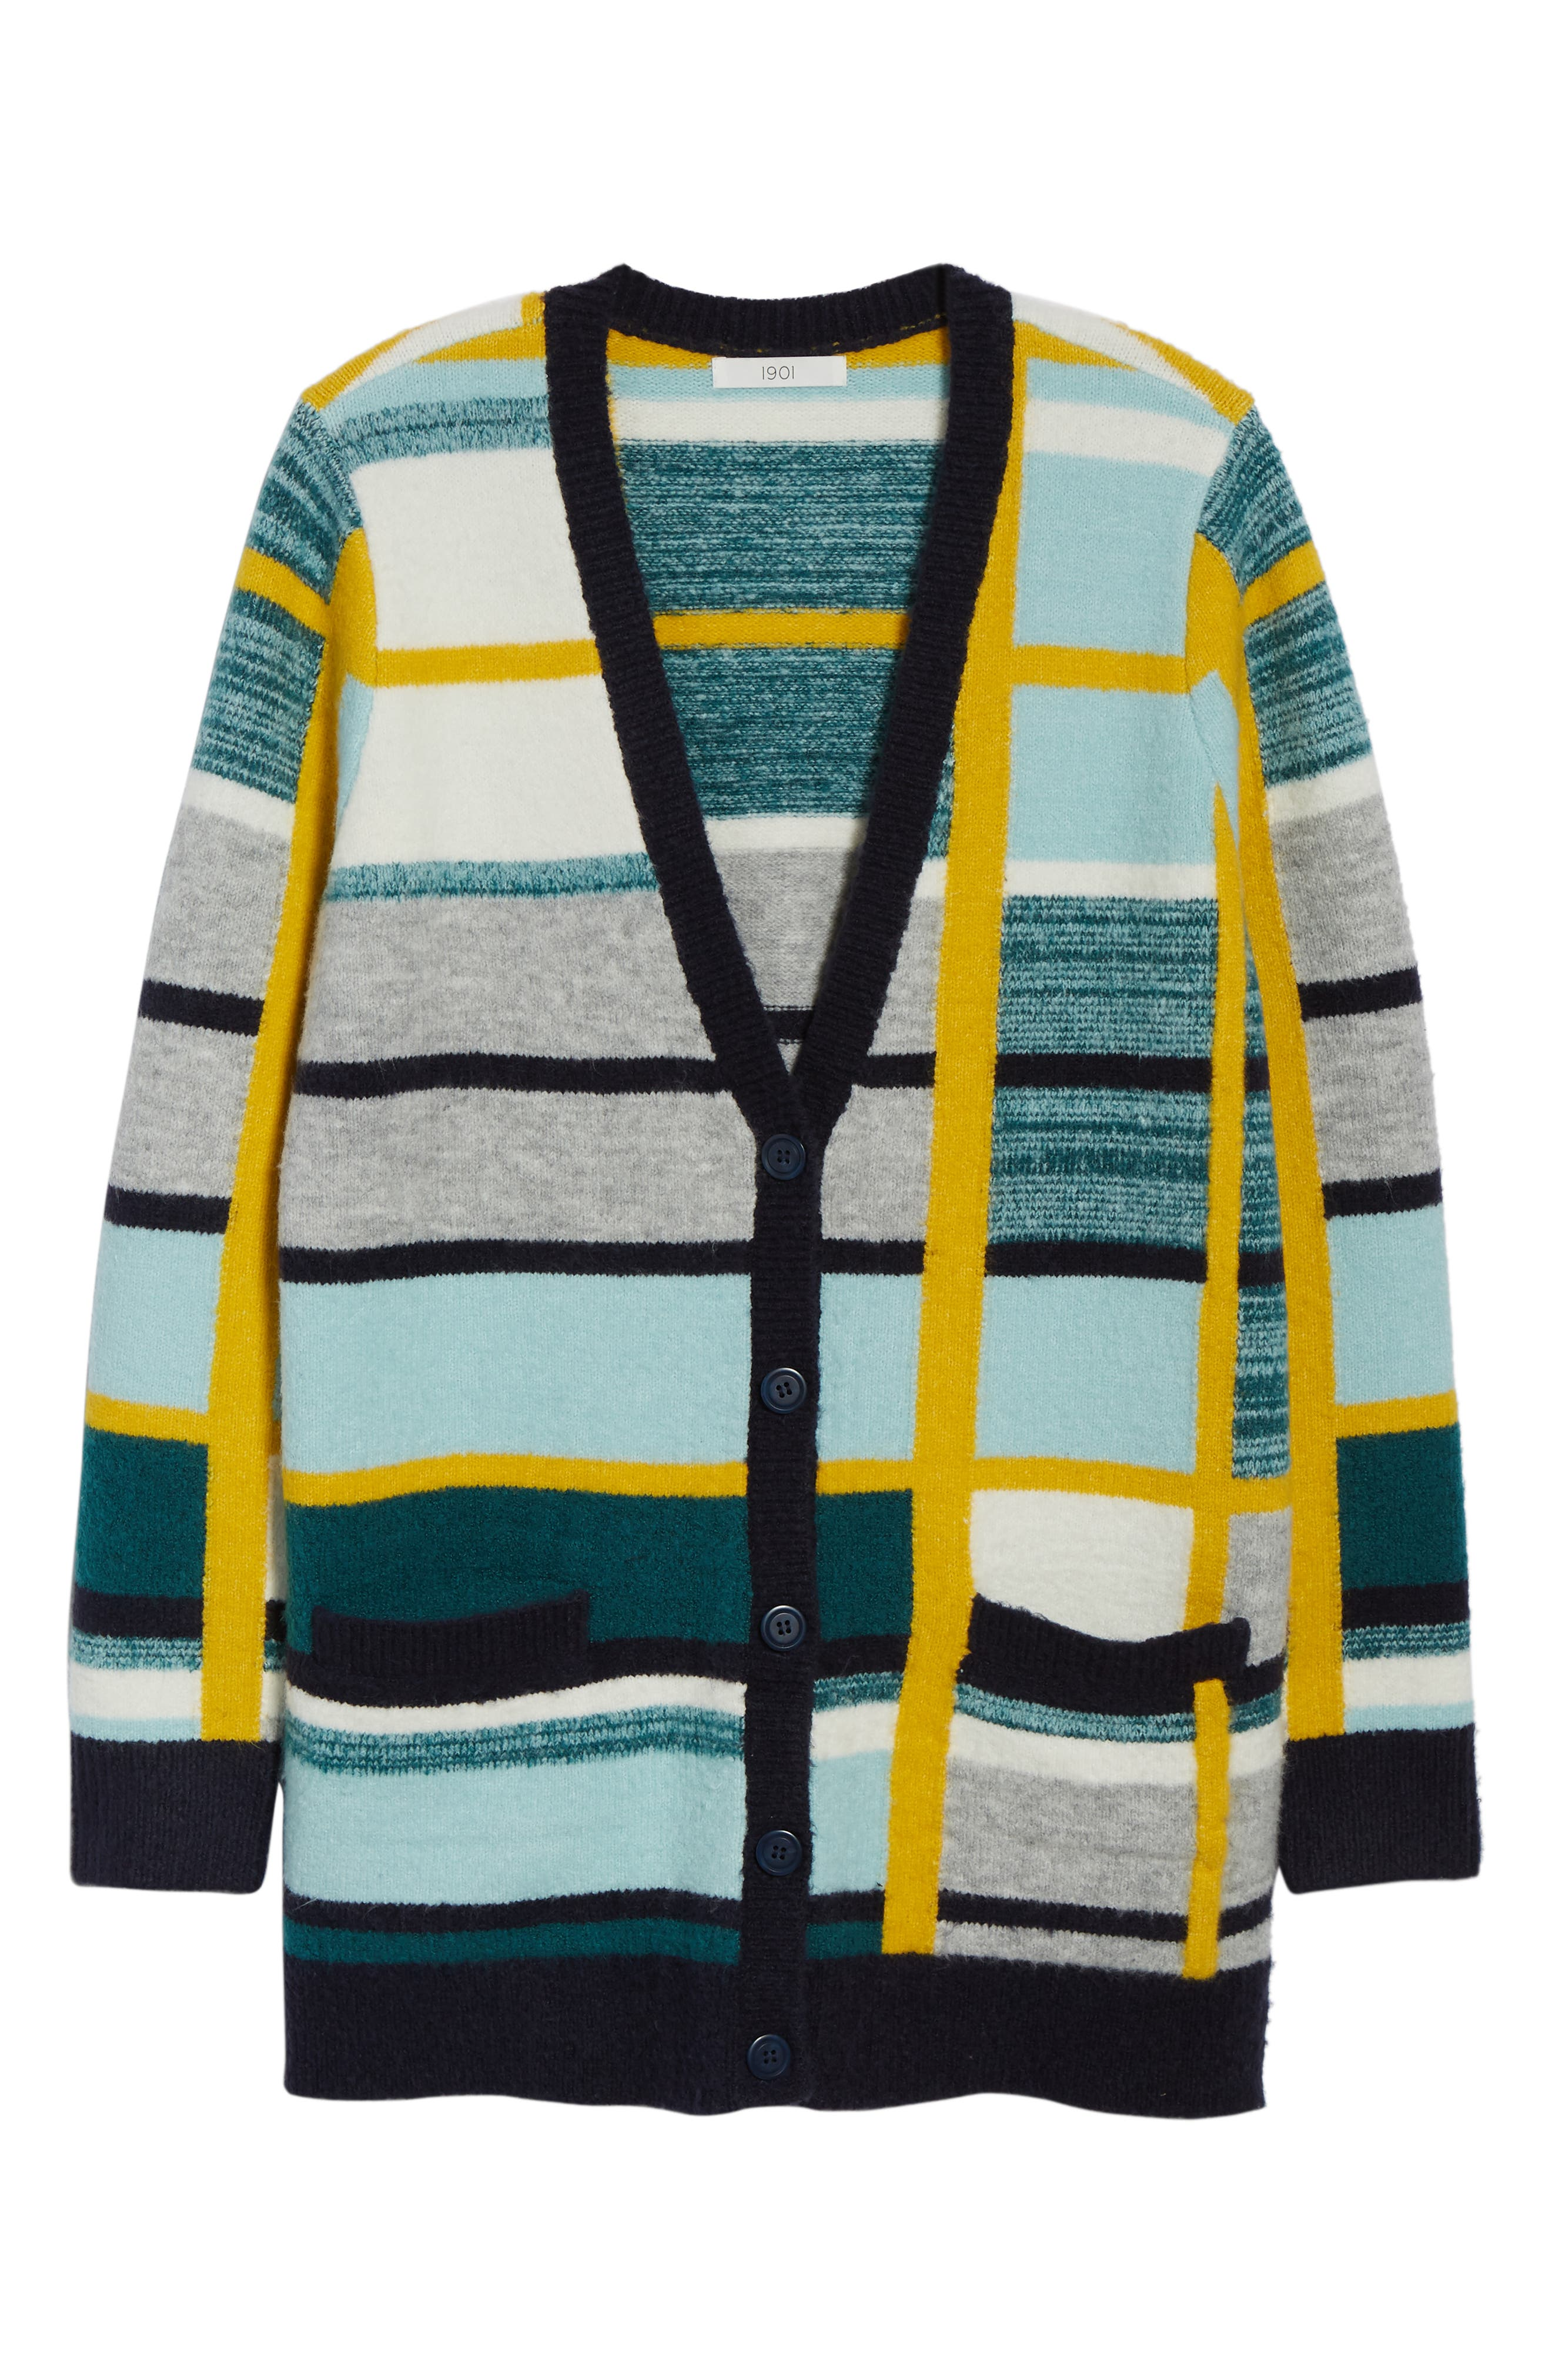 Abstract Plaid Button Front Cardigan Sweater,                             Alternate thumbnail 6, color,                             TEAL ABSTRACT PLAID